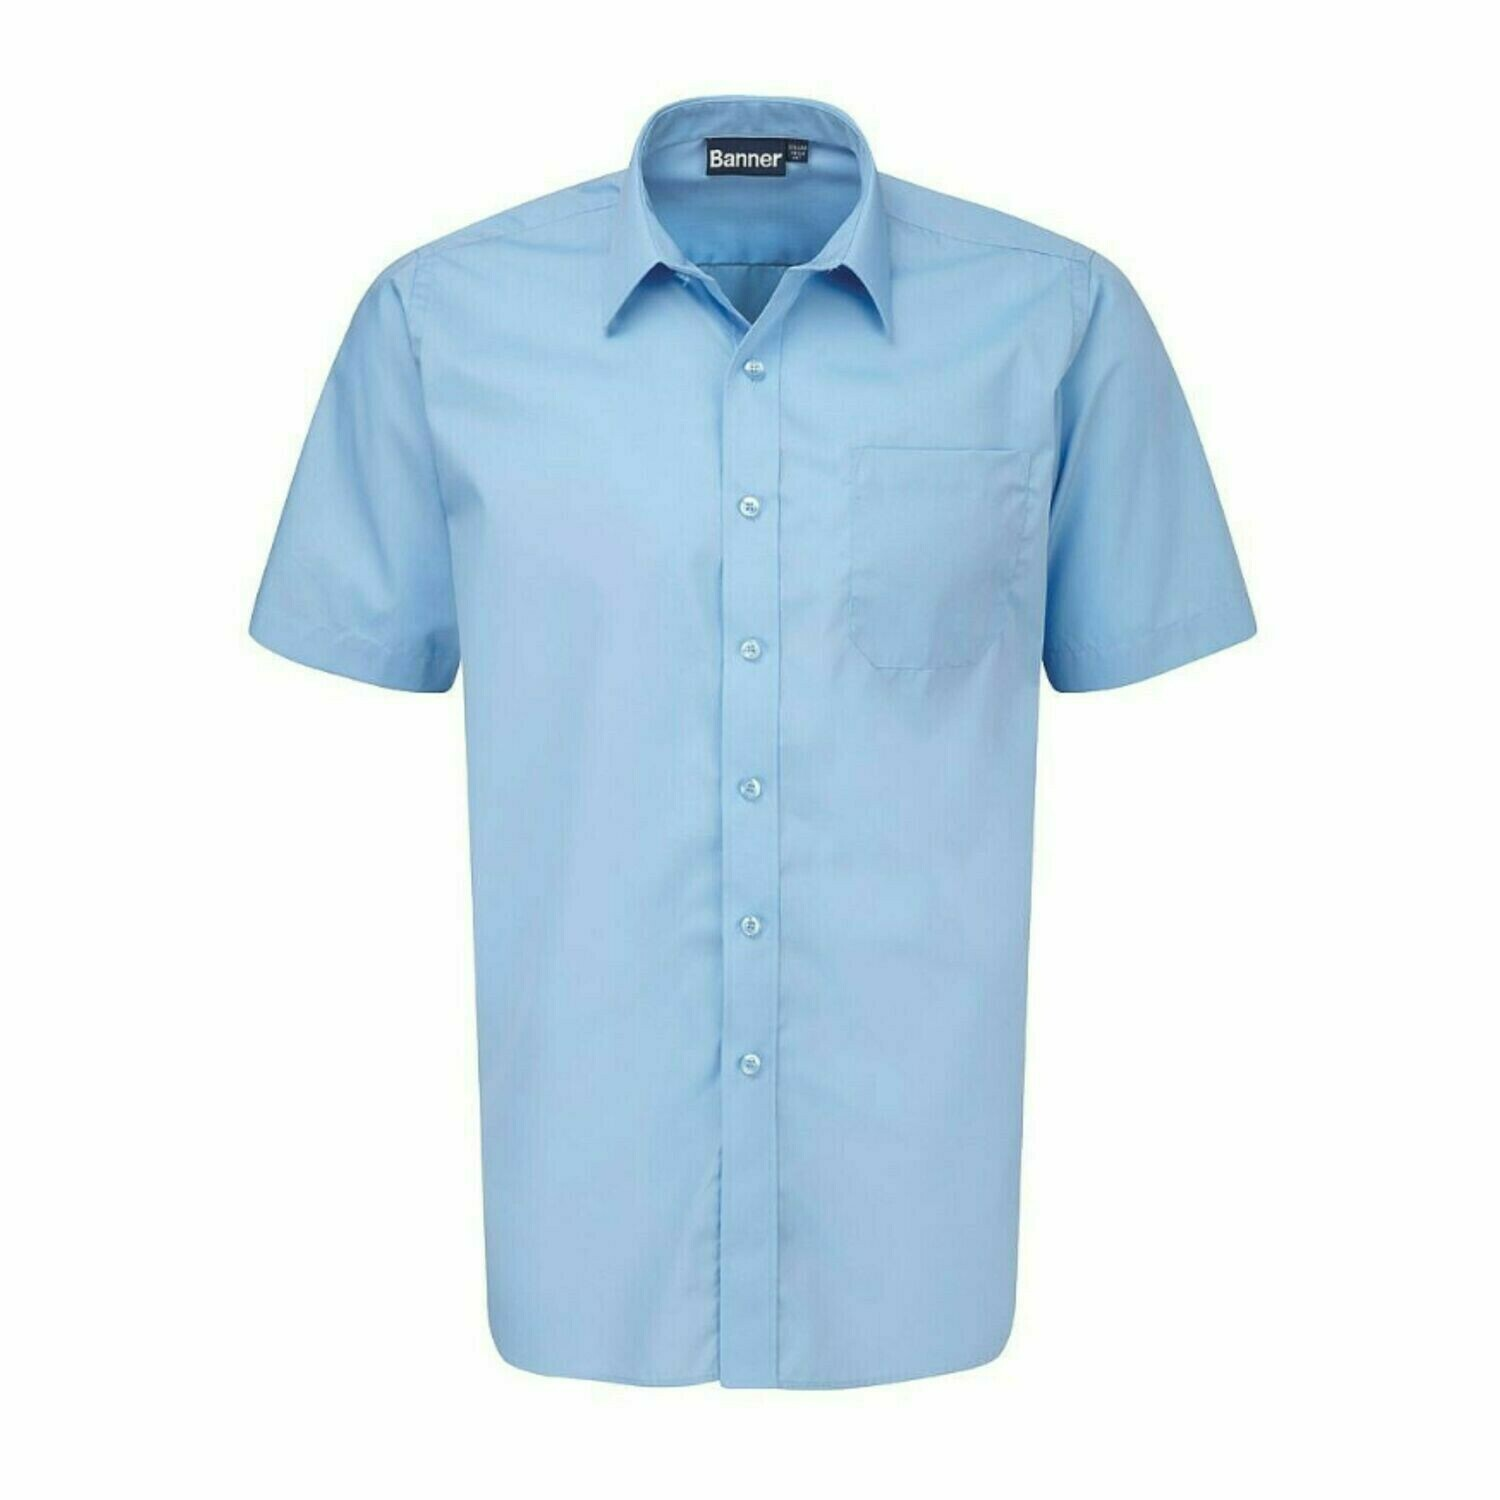 Short Sleeve Shirt in Blue for Boys by Banner